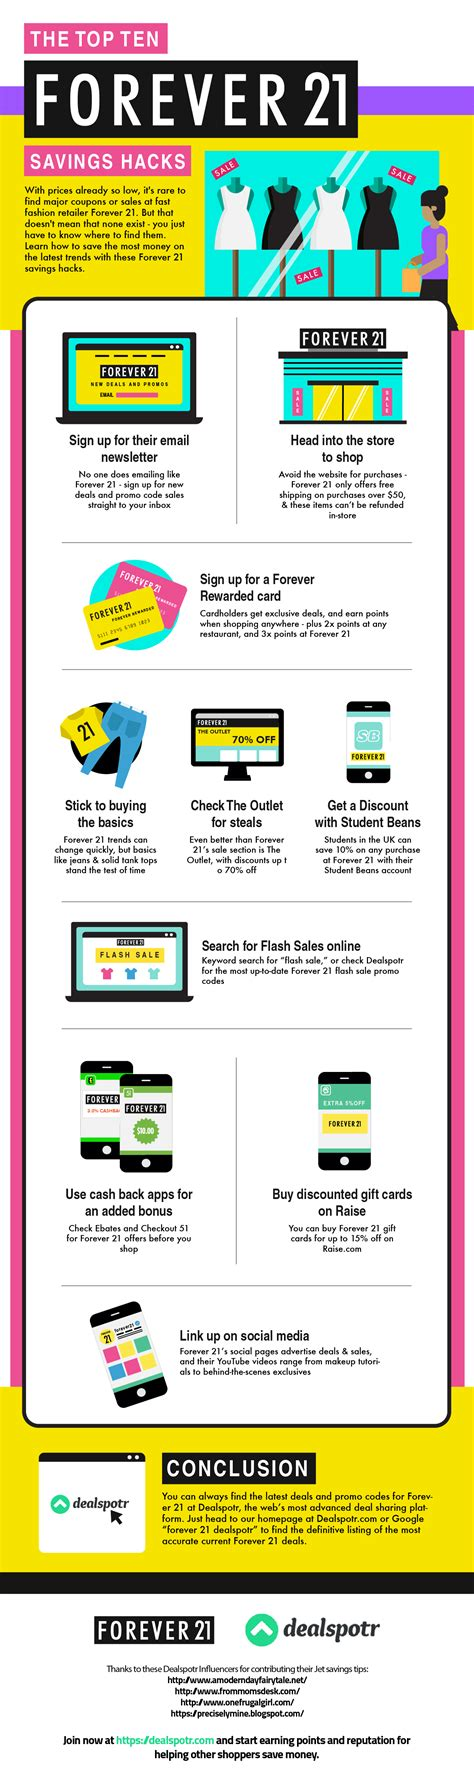 How To Use Forever 21 Gift Card Online - top 10 ways to save money at forever 21 infographic